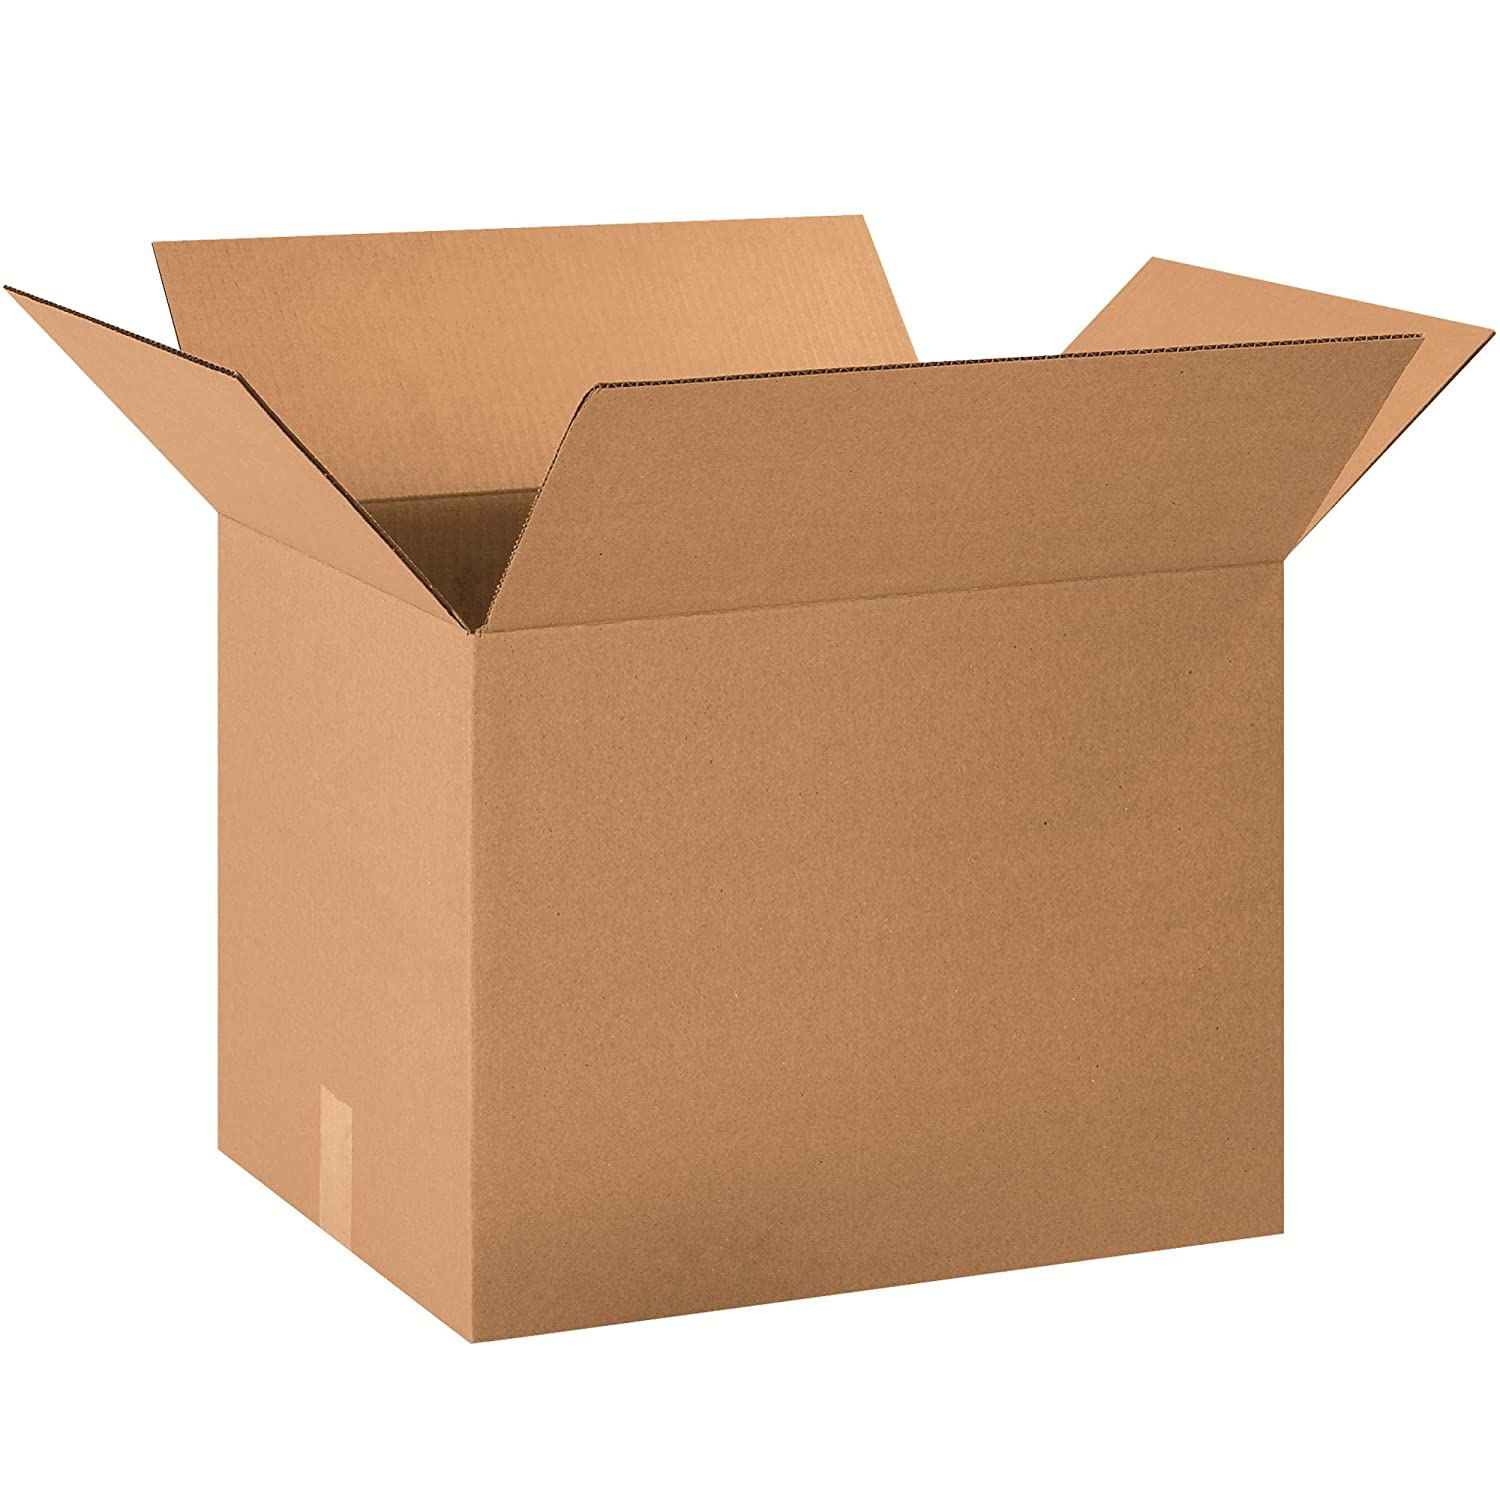 2021new shipping free Aviditi Recyclable Corrugated Cardboard Boxes 21